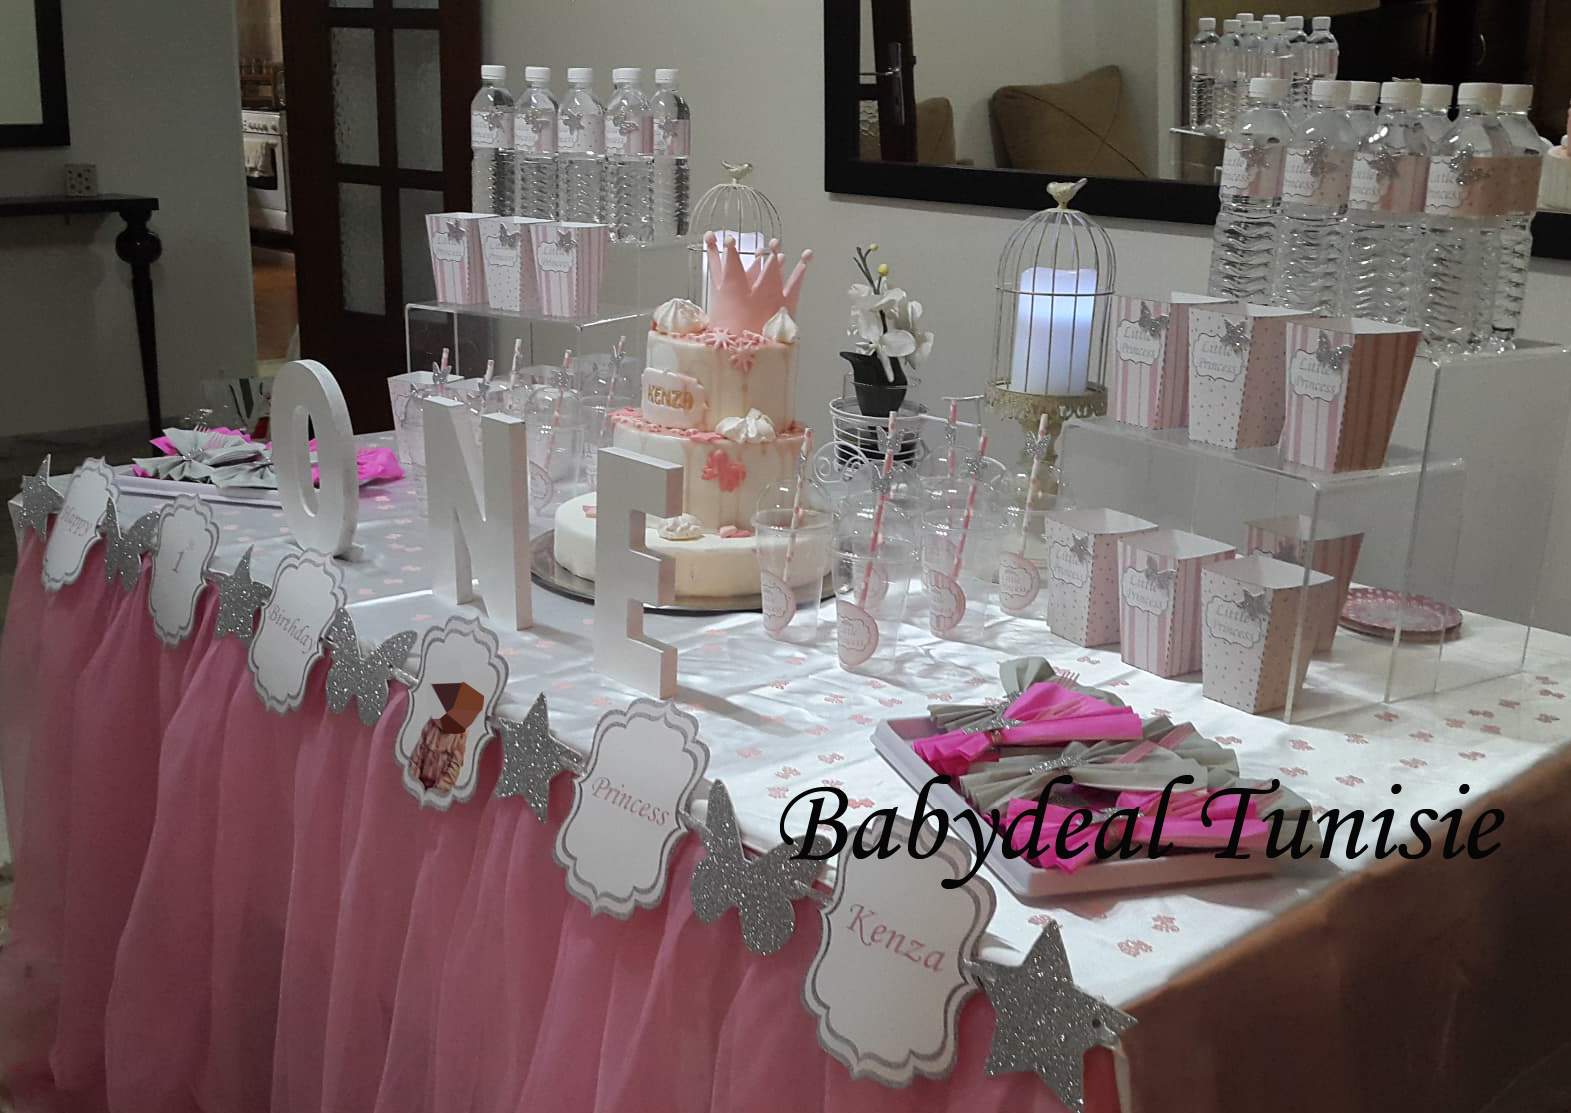 decorationt-birthday-princess-babydeal